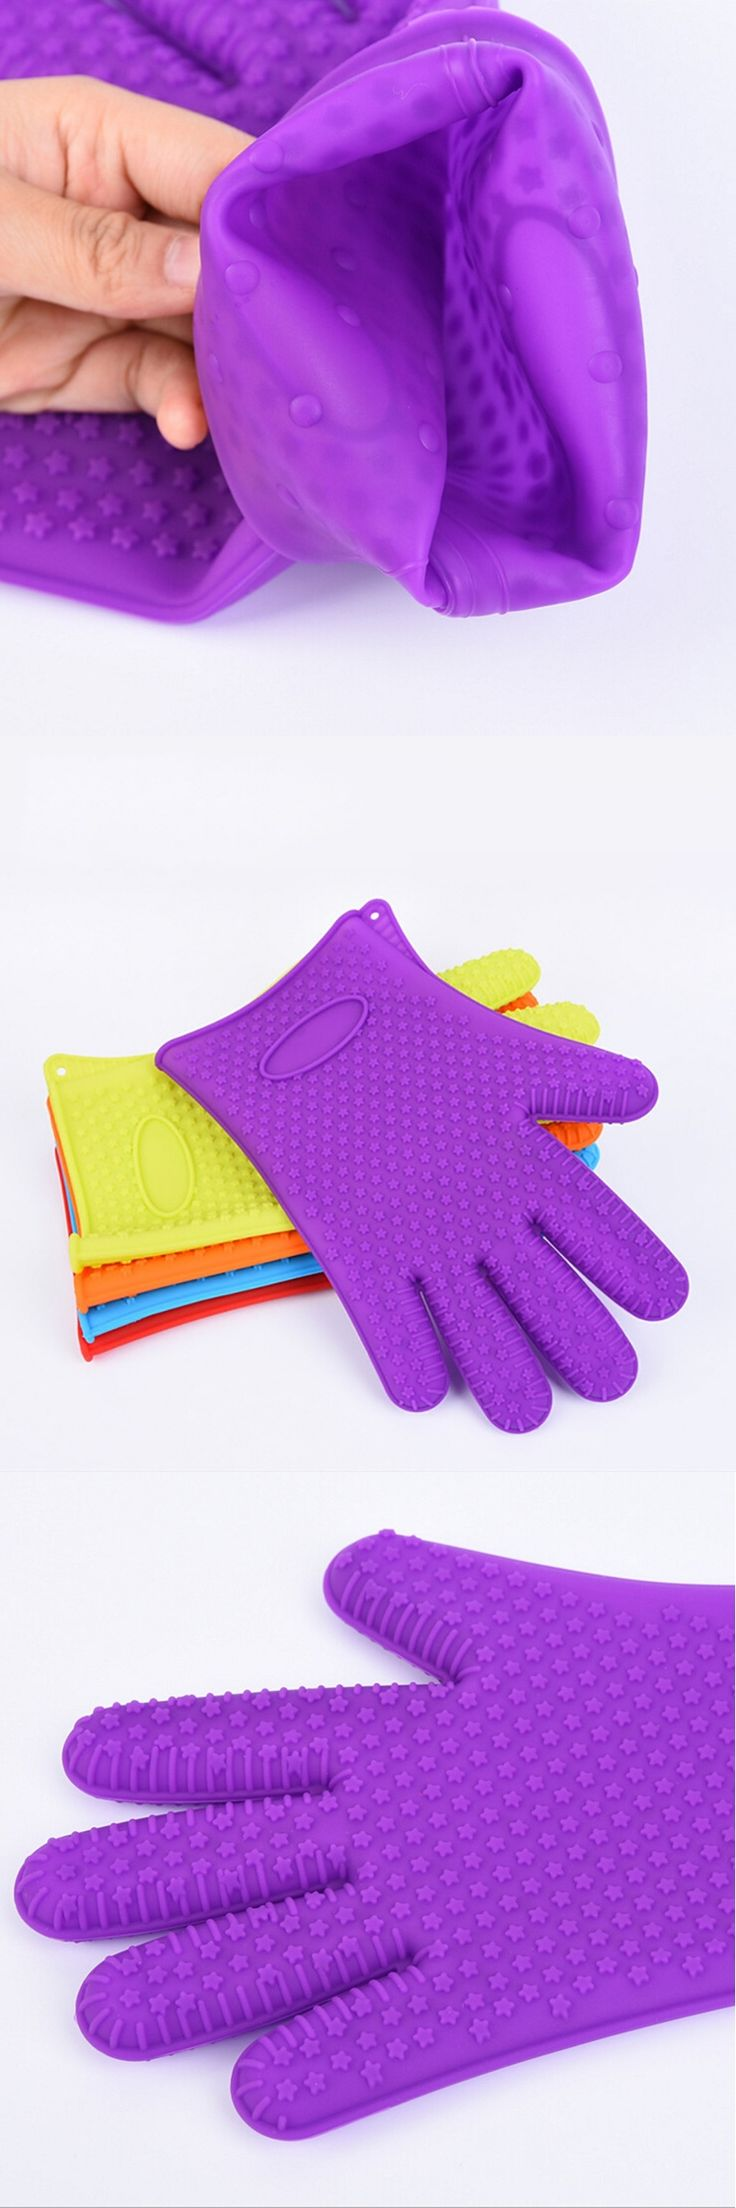 Blue Silicone Cotton Gloves Anti-hot Microwave  Insulated Gloves Beautiful Non-slip Rubber Silicone Glove Kitchen Supply